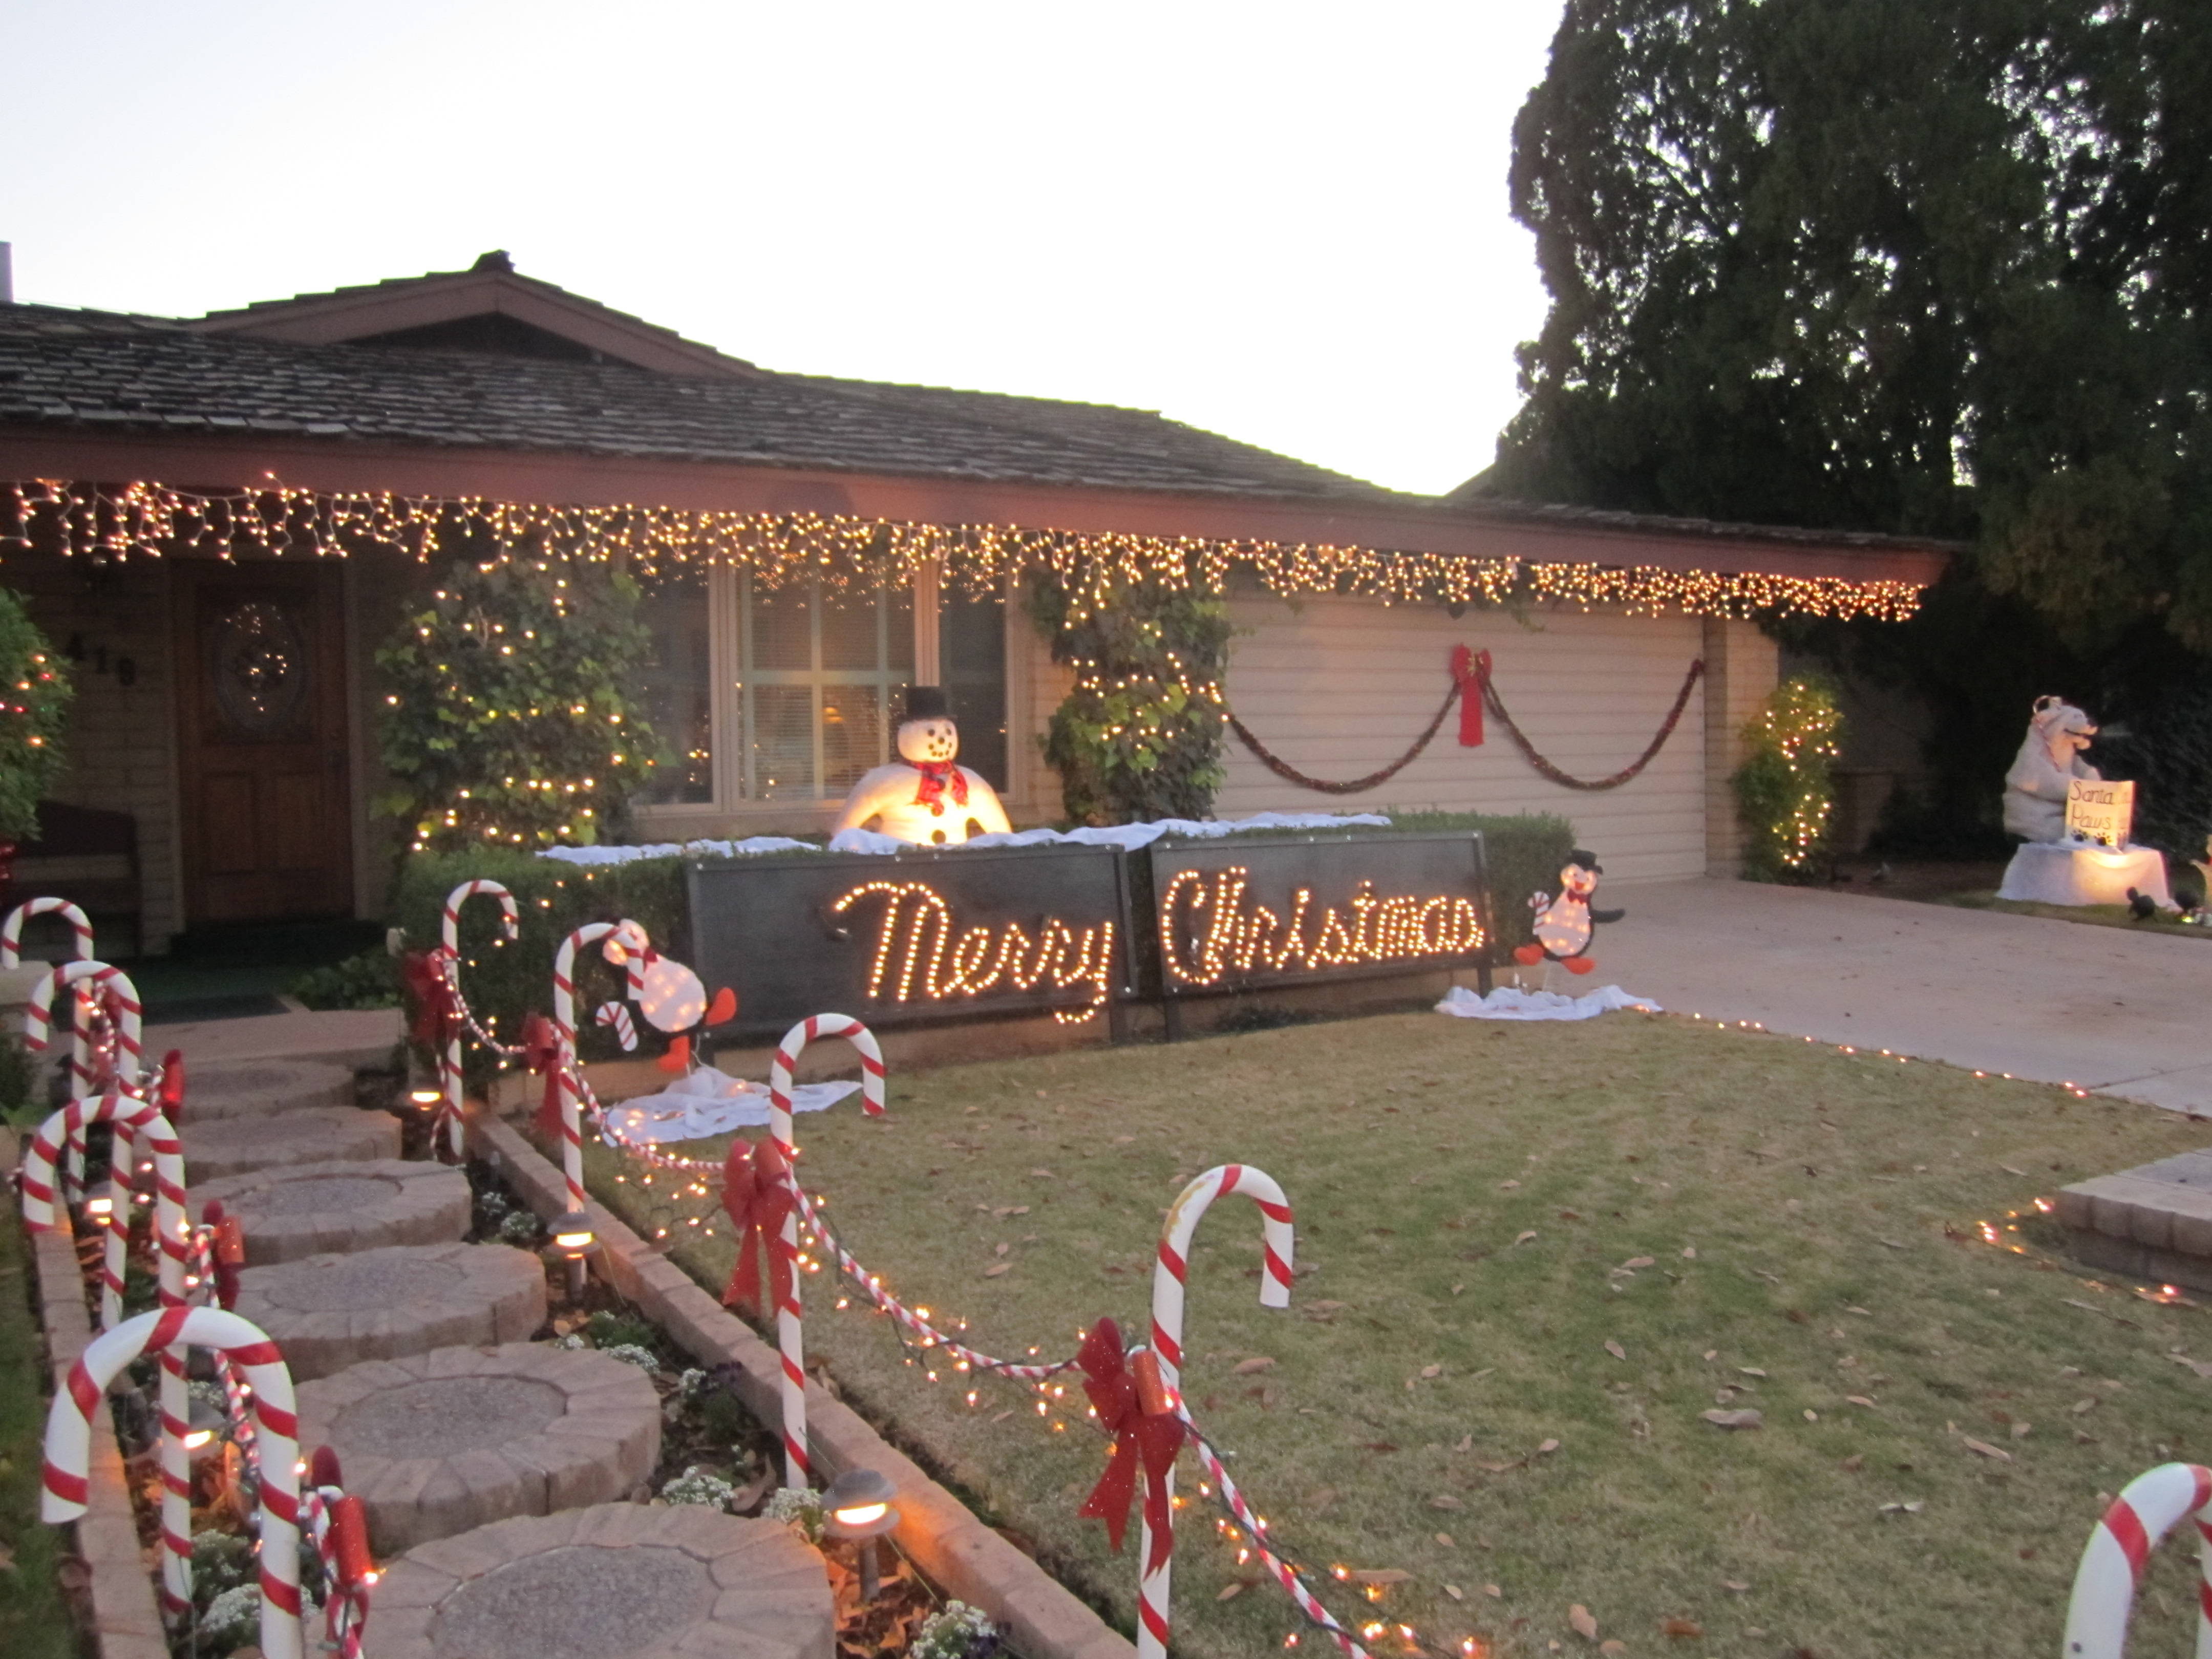 santa paws - How To Decorate My Front Yard For Christmas